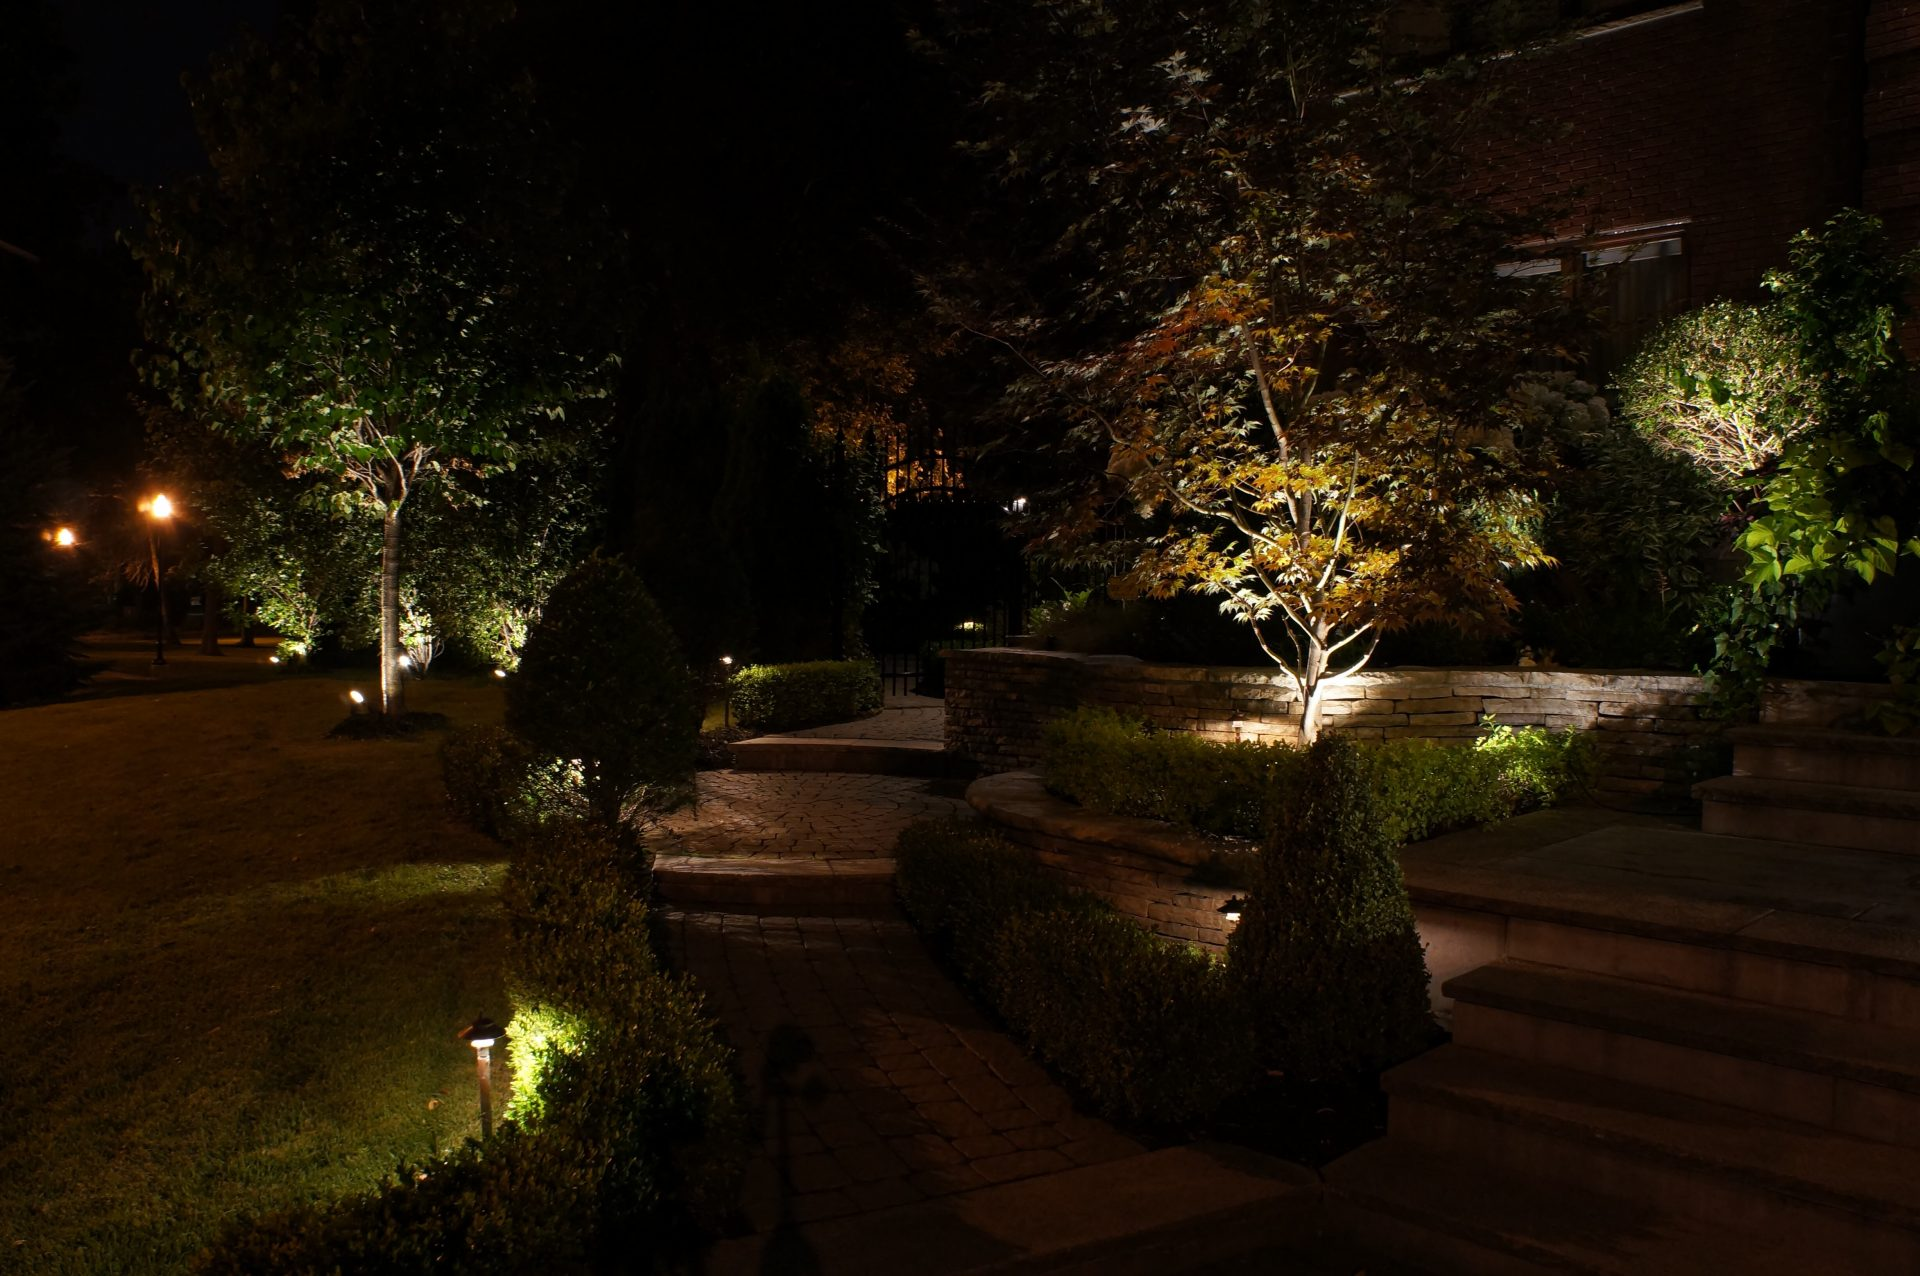 Evening pathway lit by small floodlights in garden